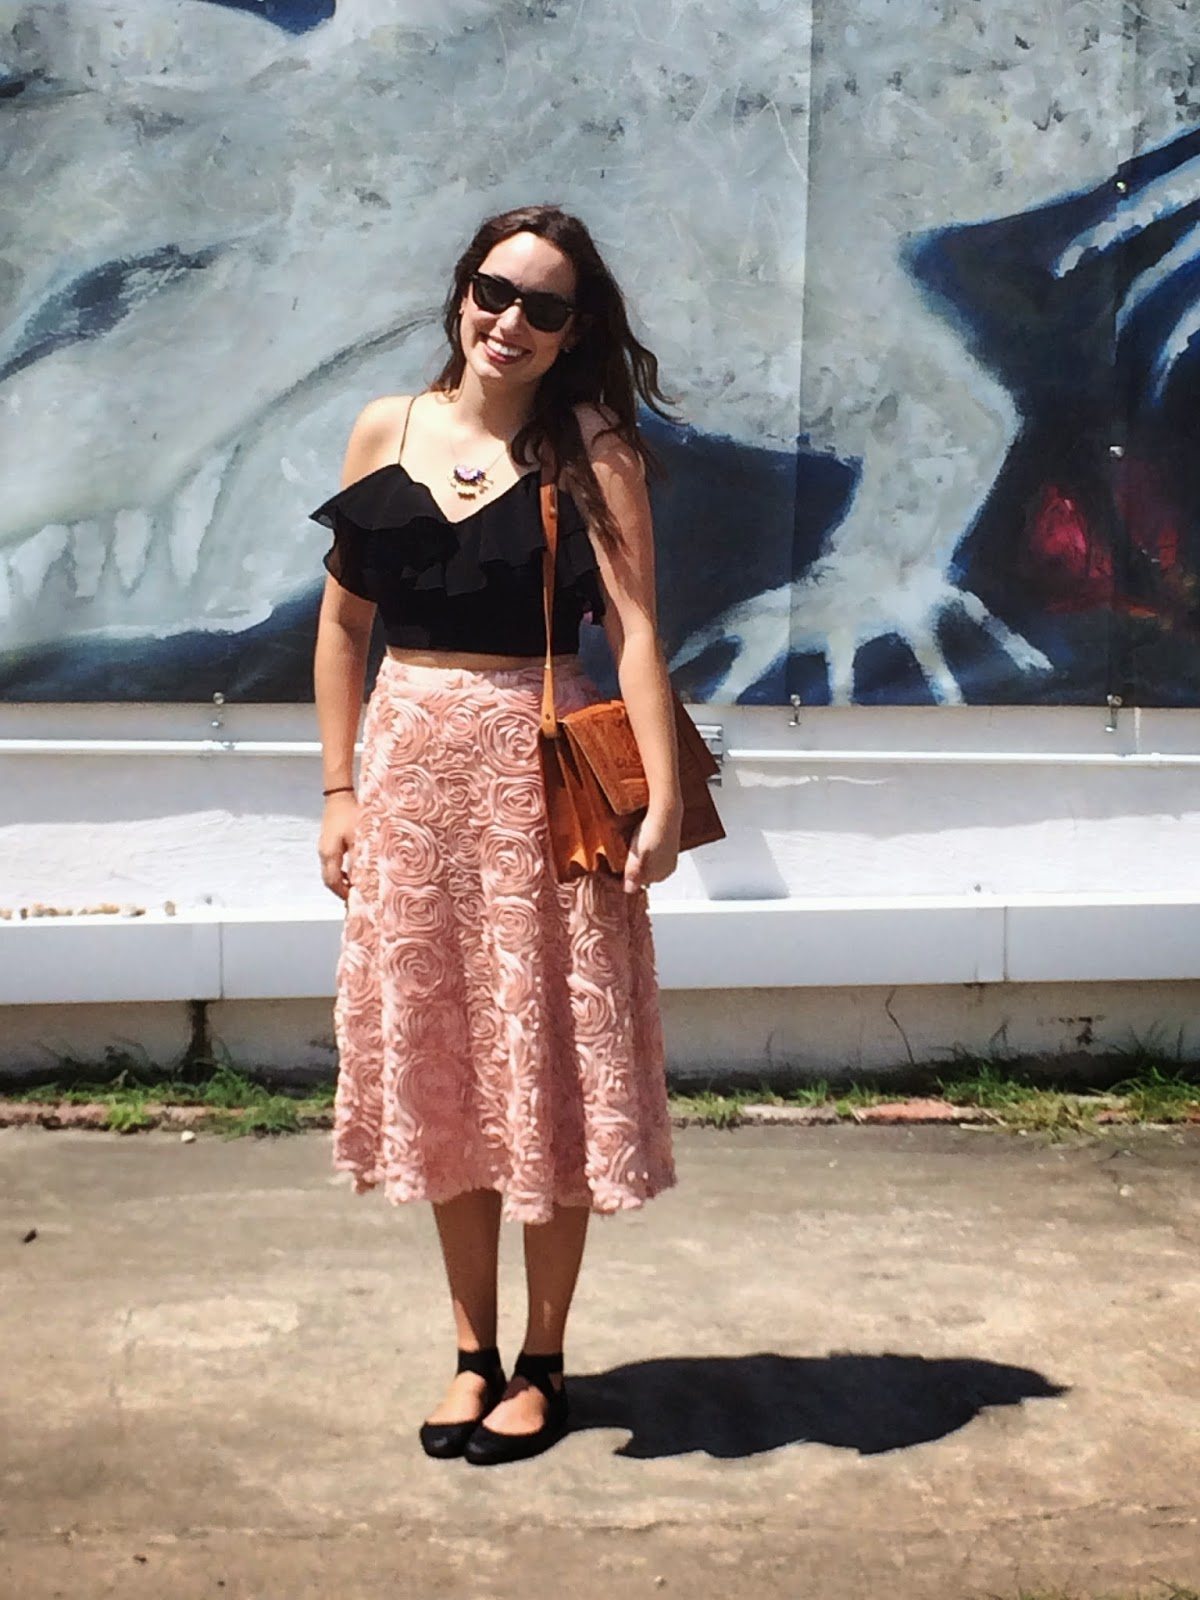 Anthropologie Petaluma Midi Skirt, Anthropologie Pink Skirt, Anthropologie Pink Midi Skirt, Petaluma Skirt, Trendy in Texas, Trendy in Texas Blog, Alice Kerley